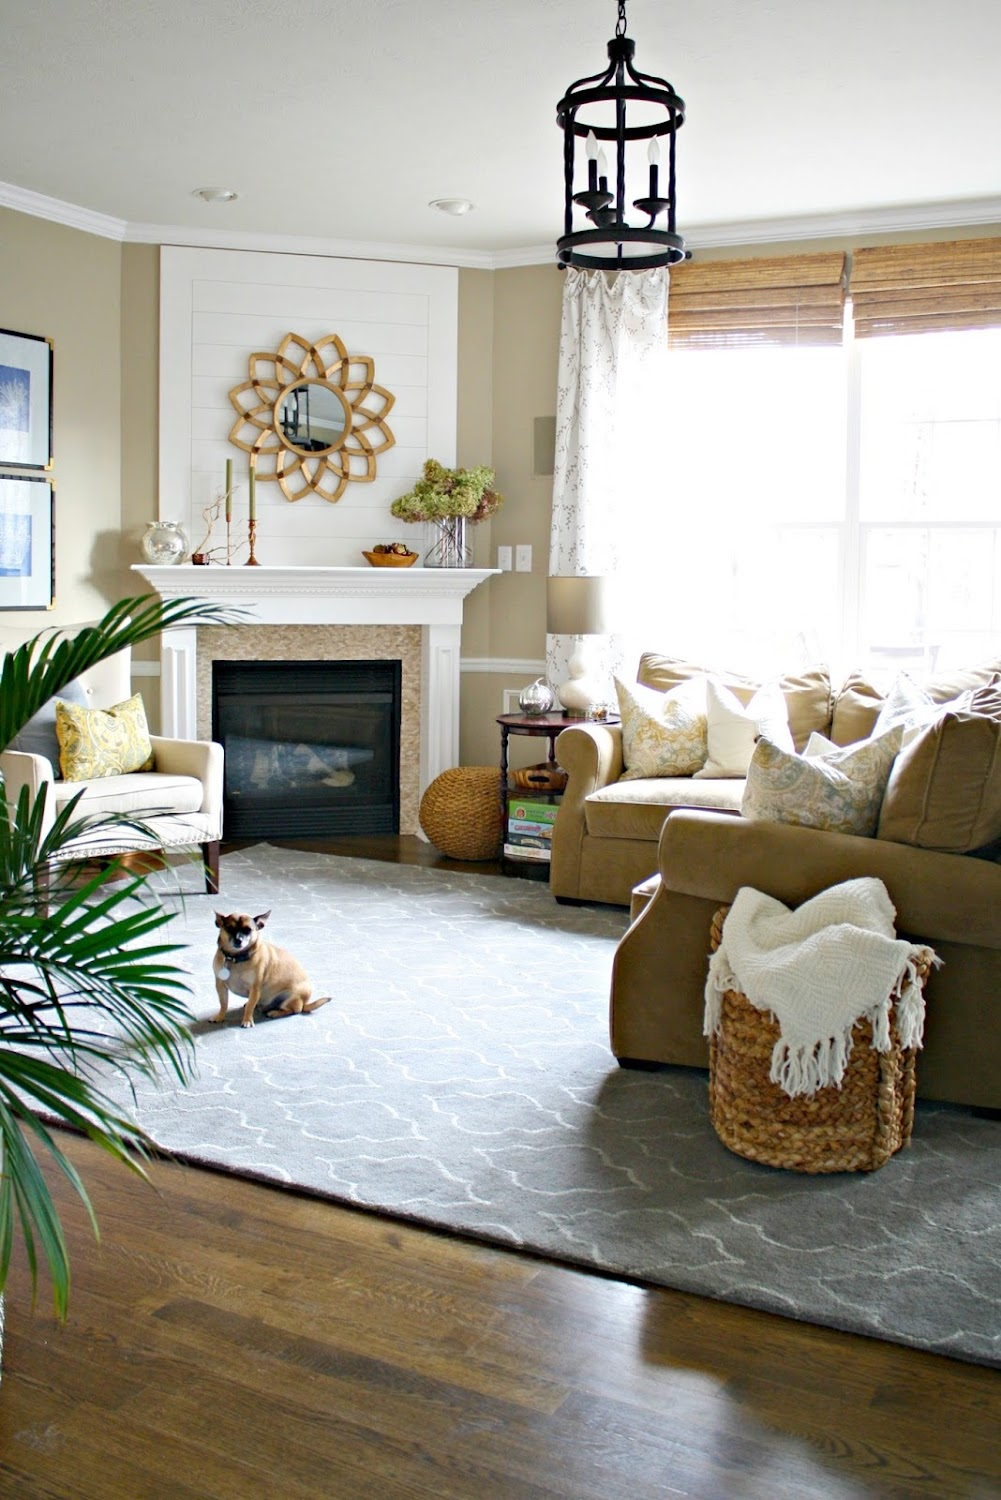 Our home from thrifty decor chick for Living room mats